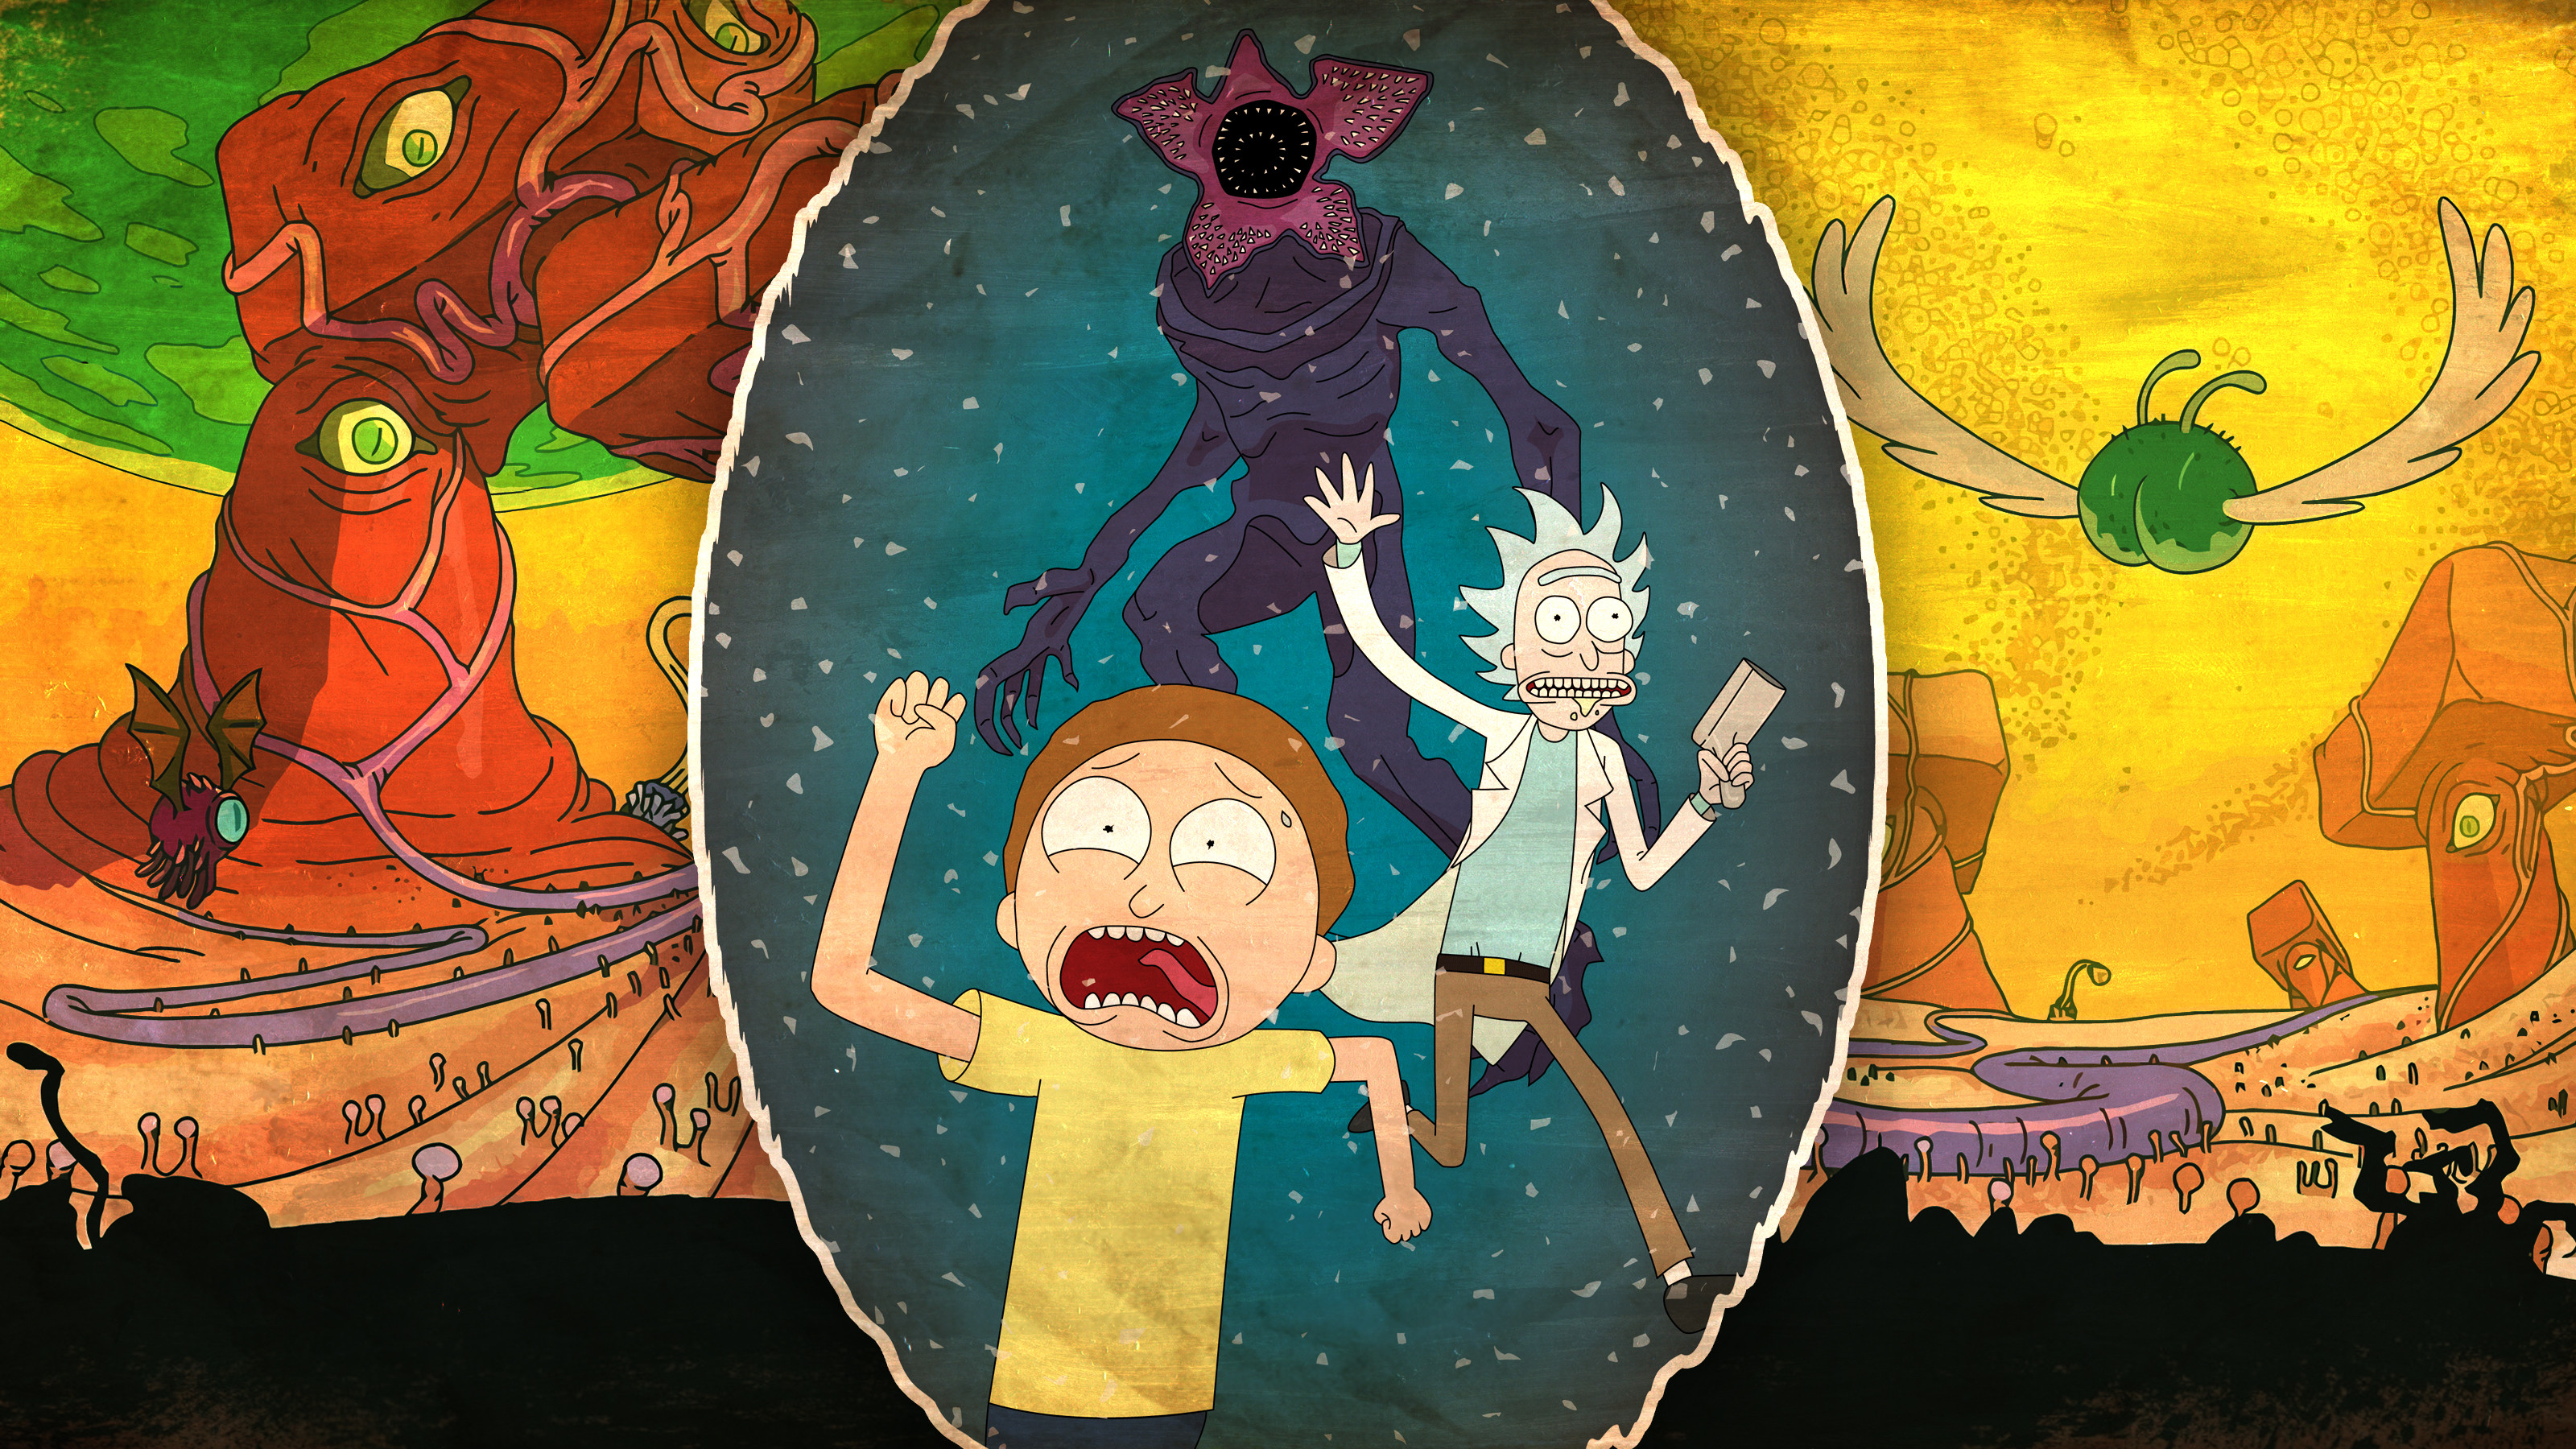 Rick And Morty 4k  HD Cartoons  4k Wallpapers  Images  Backgrounds     Rick And Morty 4k